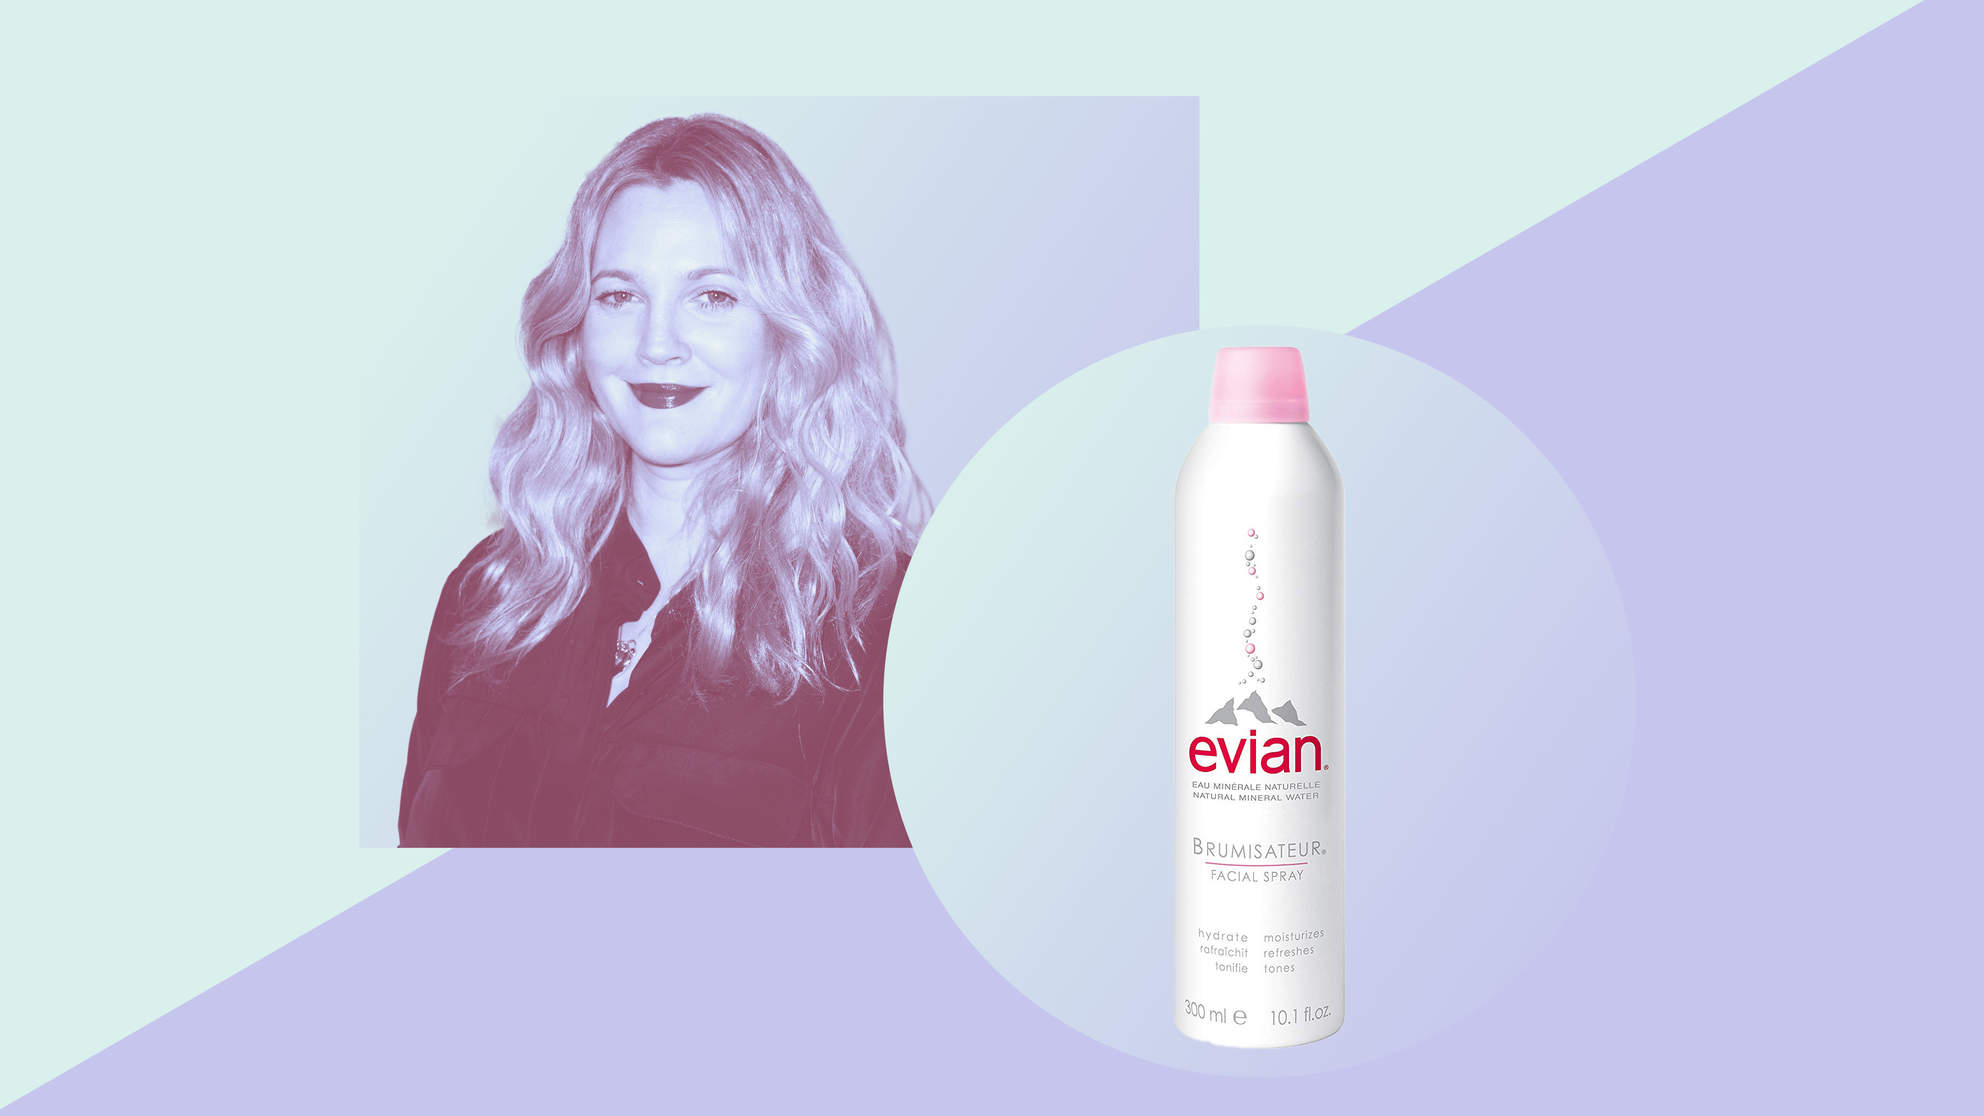 Drew Barrymore Swears By This Unexpected Product to Style Her Hair Perfectly